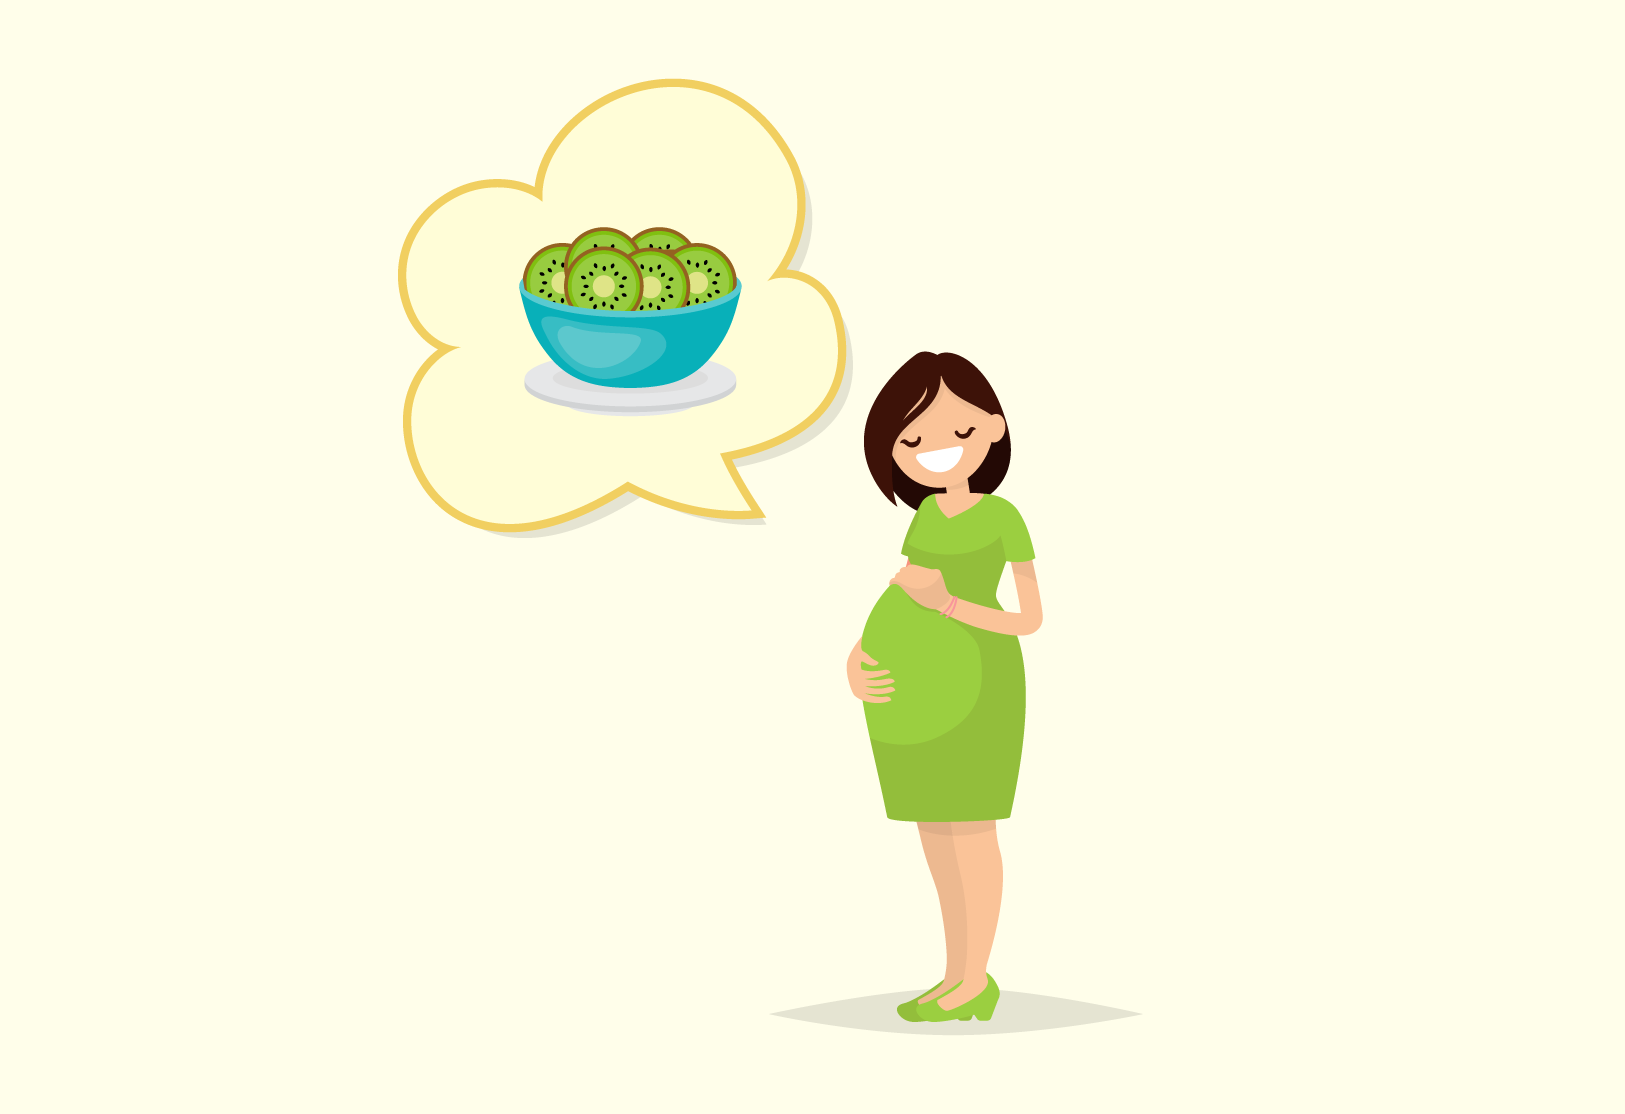 Zespri kiwifruit are a great choice when you're pregnant.